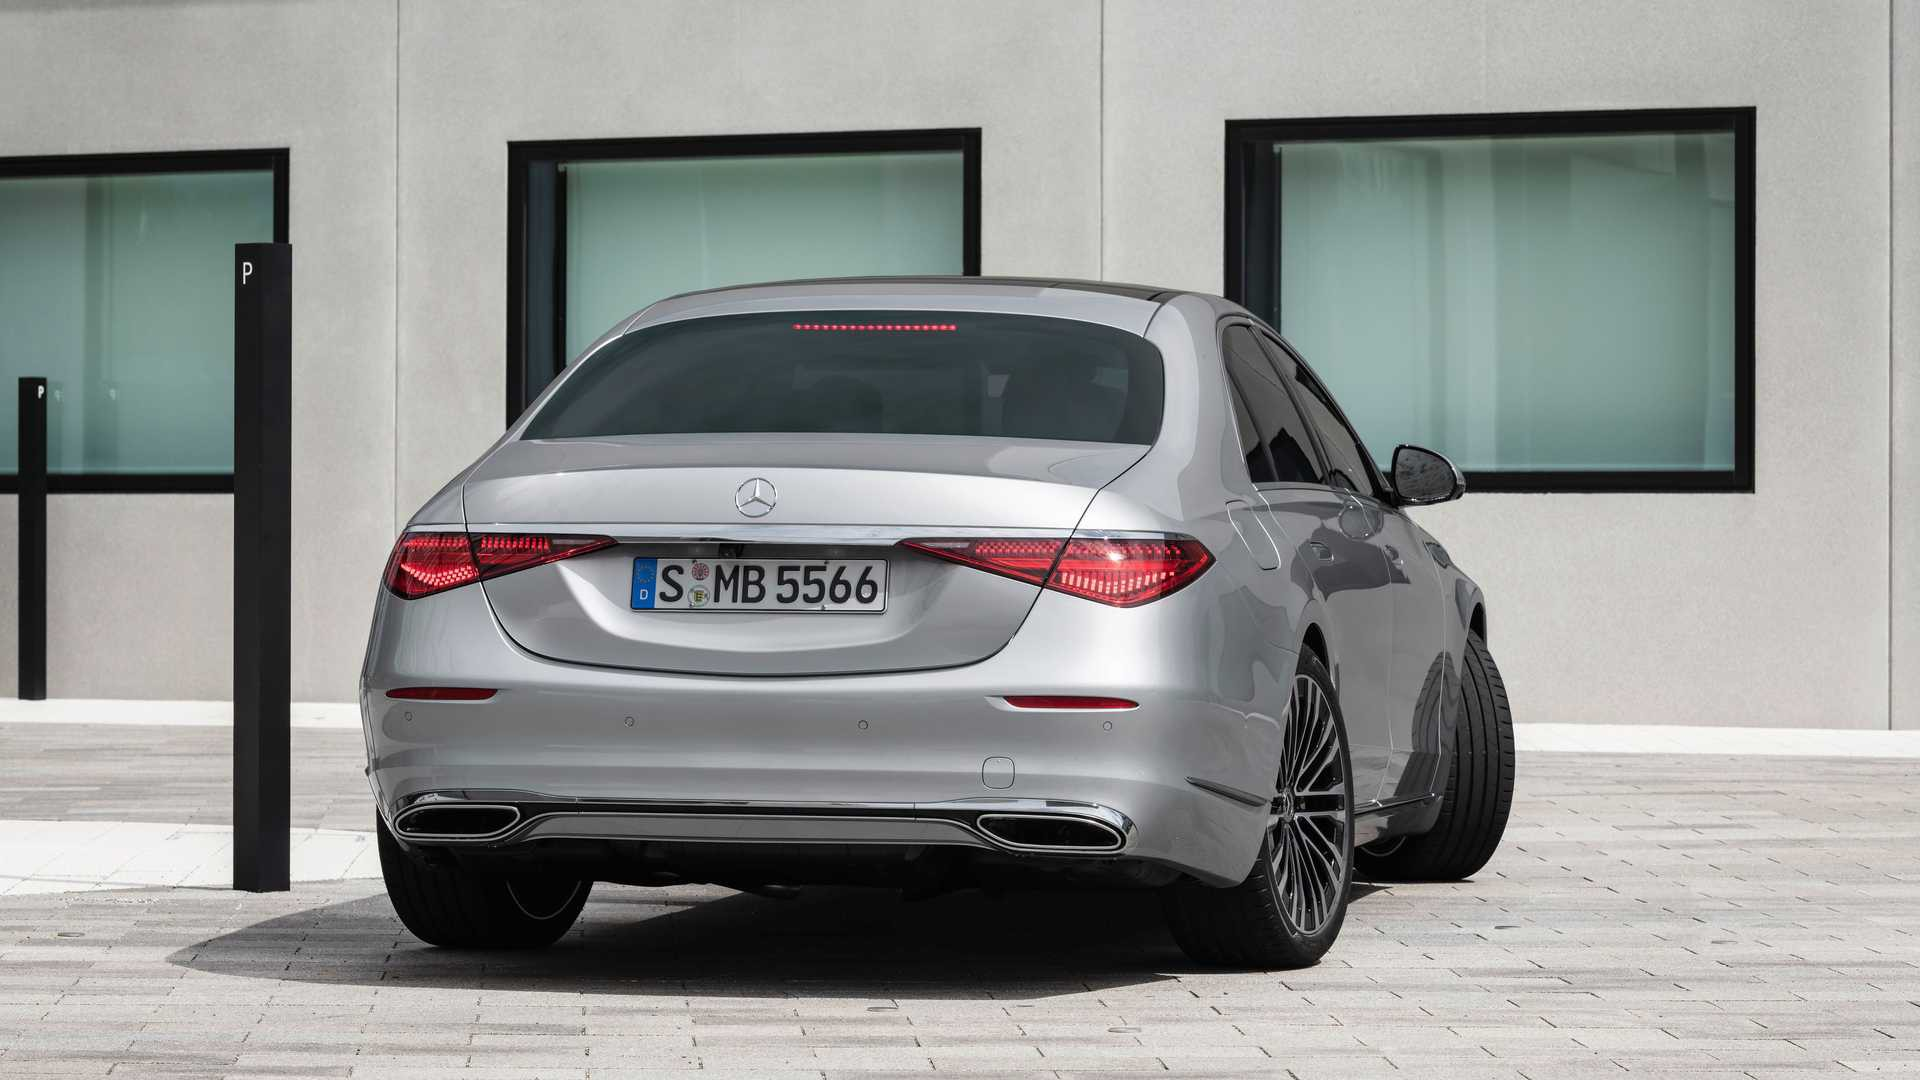 2021 mercedes benz s class sedan exterior (3)